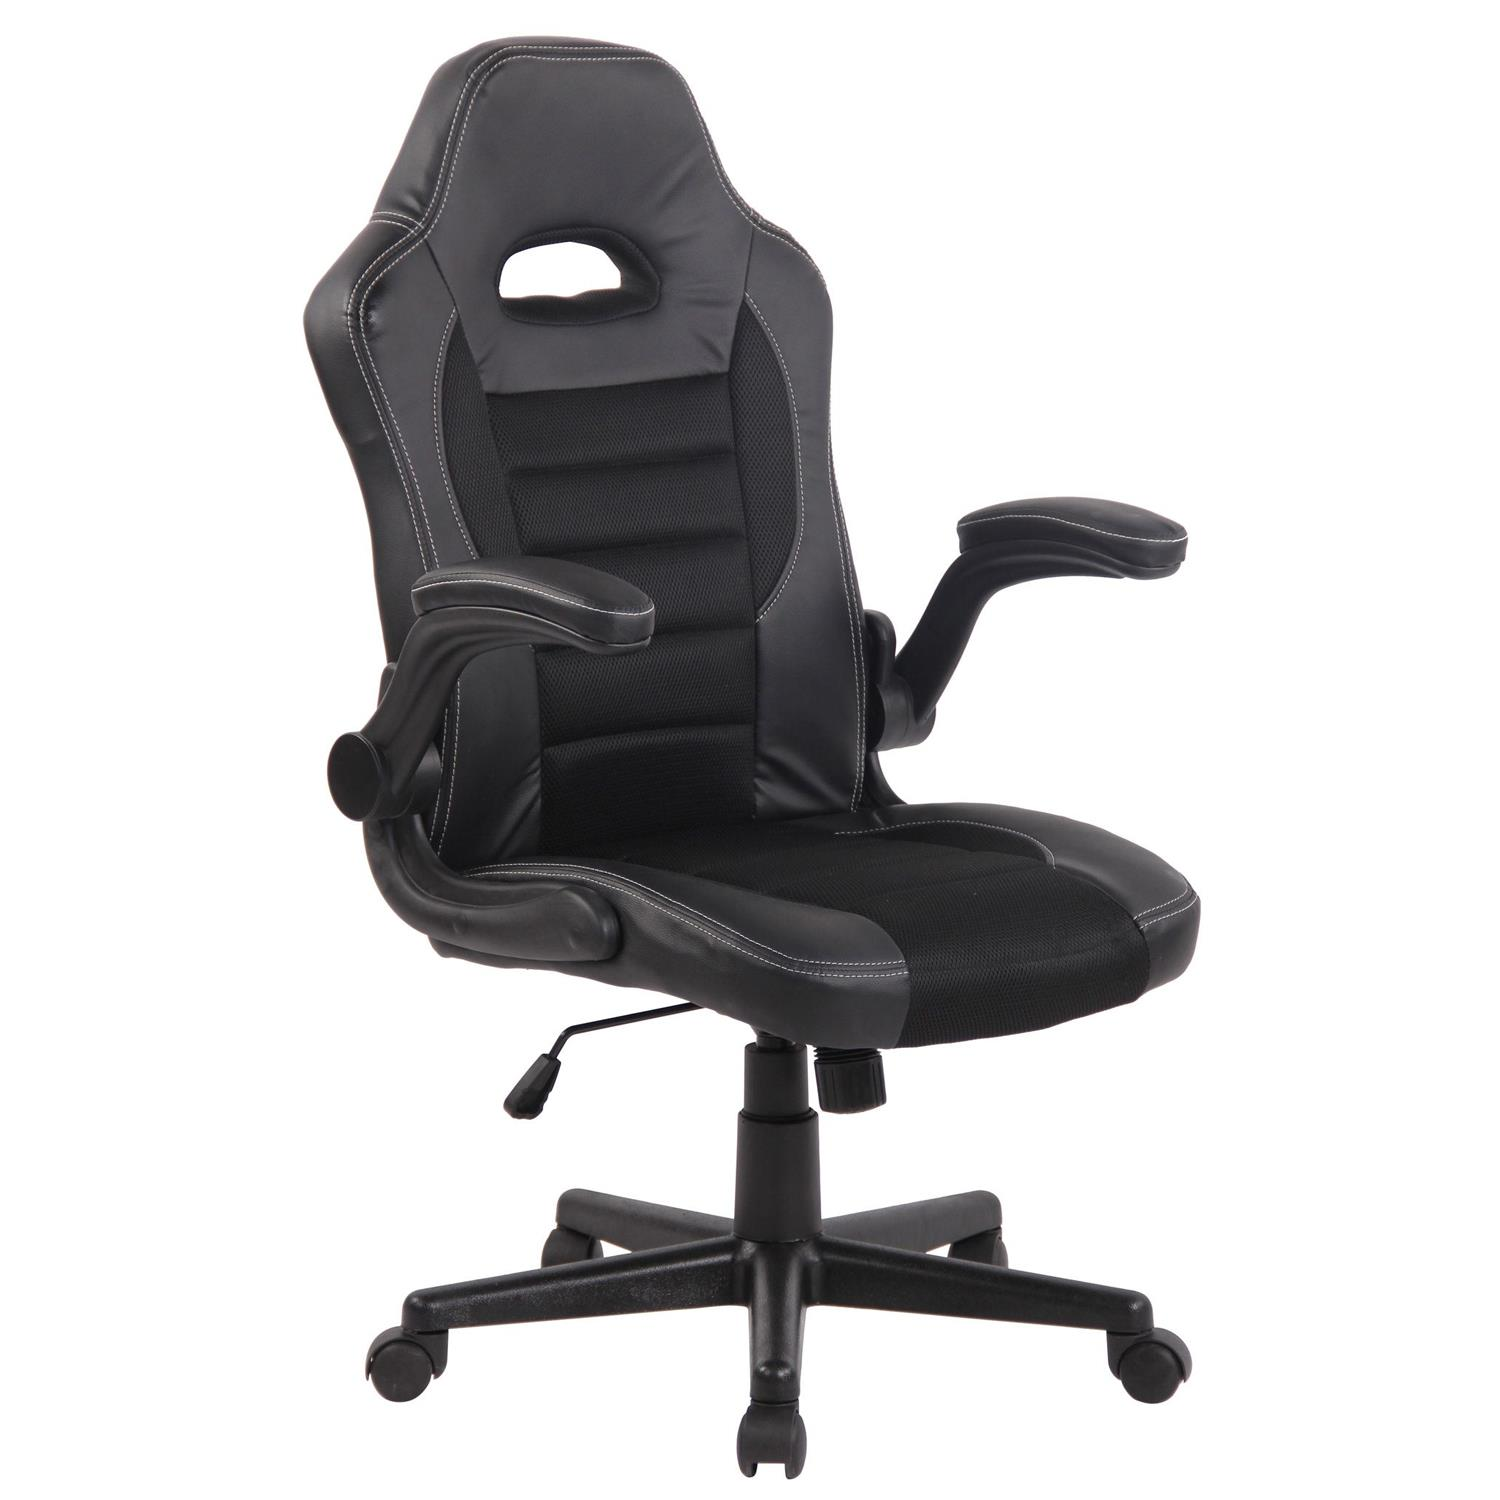 Silla de Ordenador Gaming LOTUS, reposabrazos abatibles, en piel y malla transpirable color negro